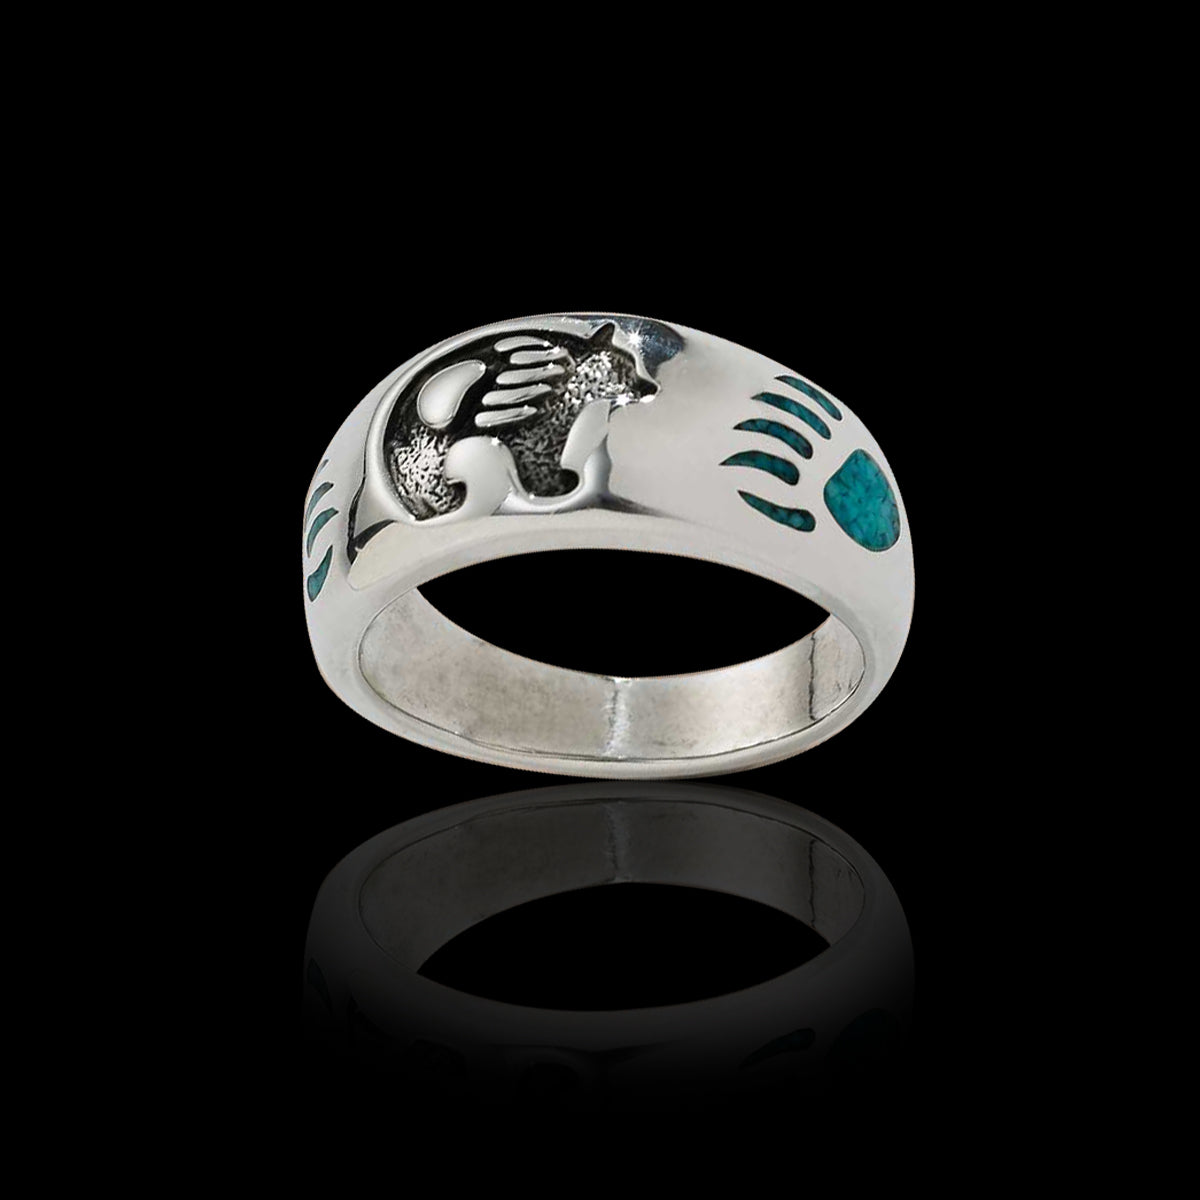 Bear Symbol Ring is hand-crafted in 925 Sterling Silver ring with a Grizzly Bear center with single bear paws, in crushed Kingman Turquoise chip inlay, either side of the Bear